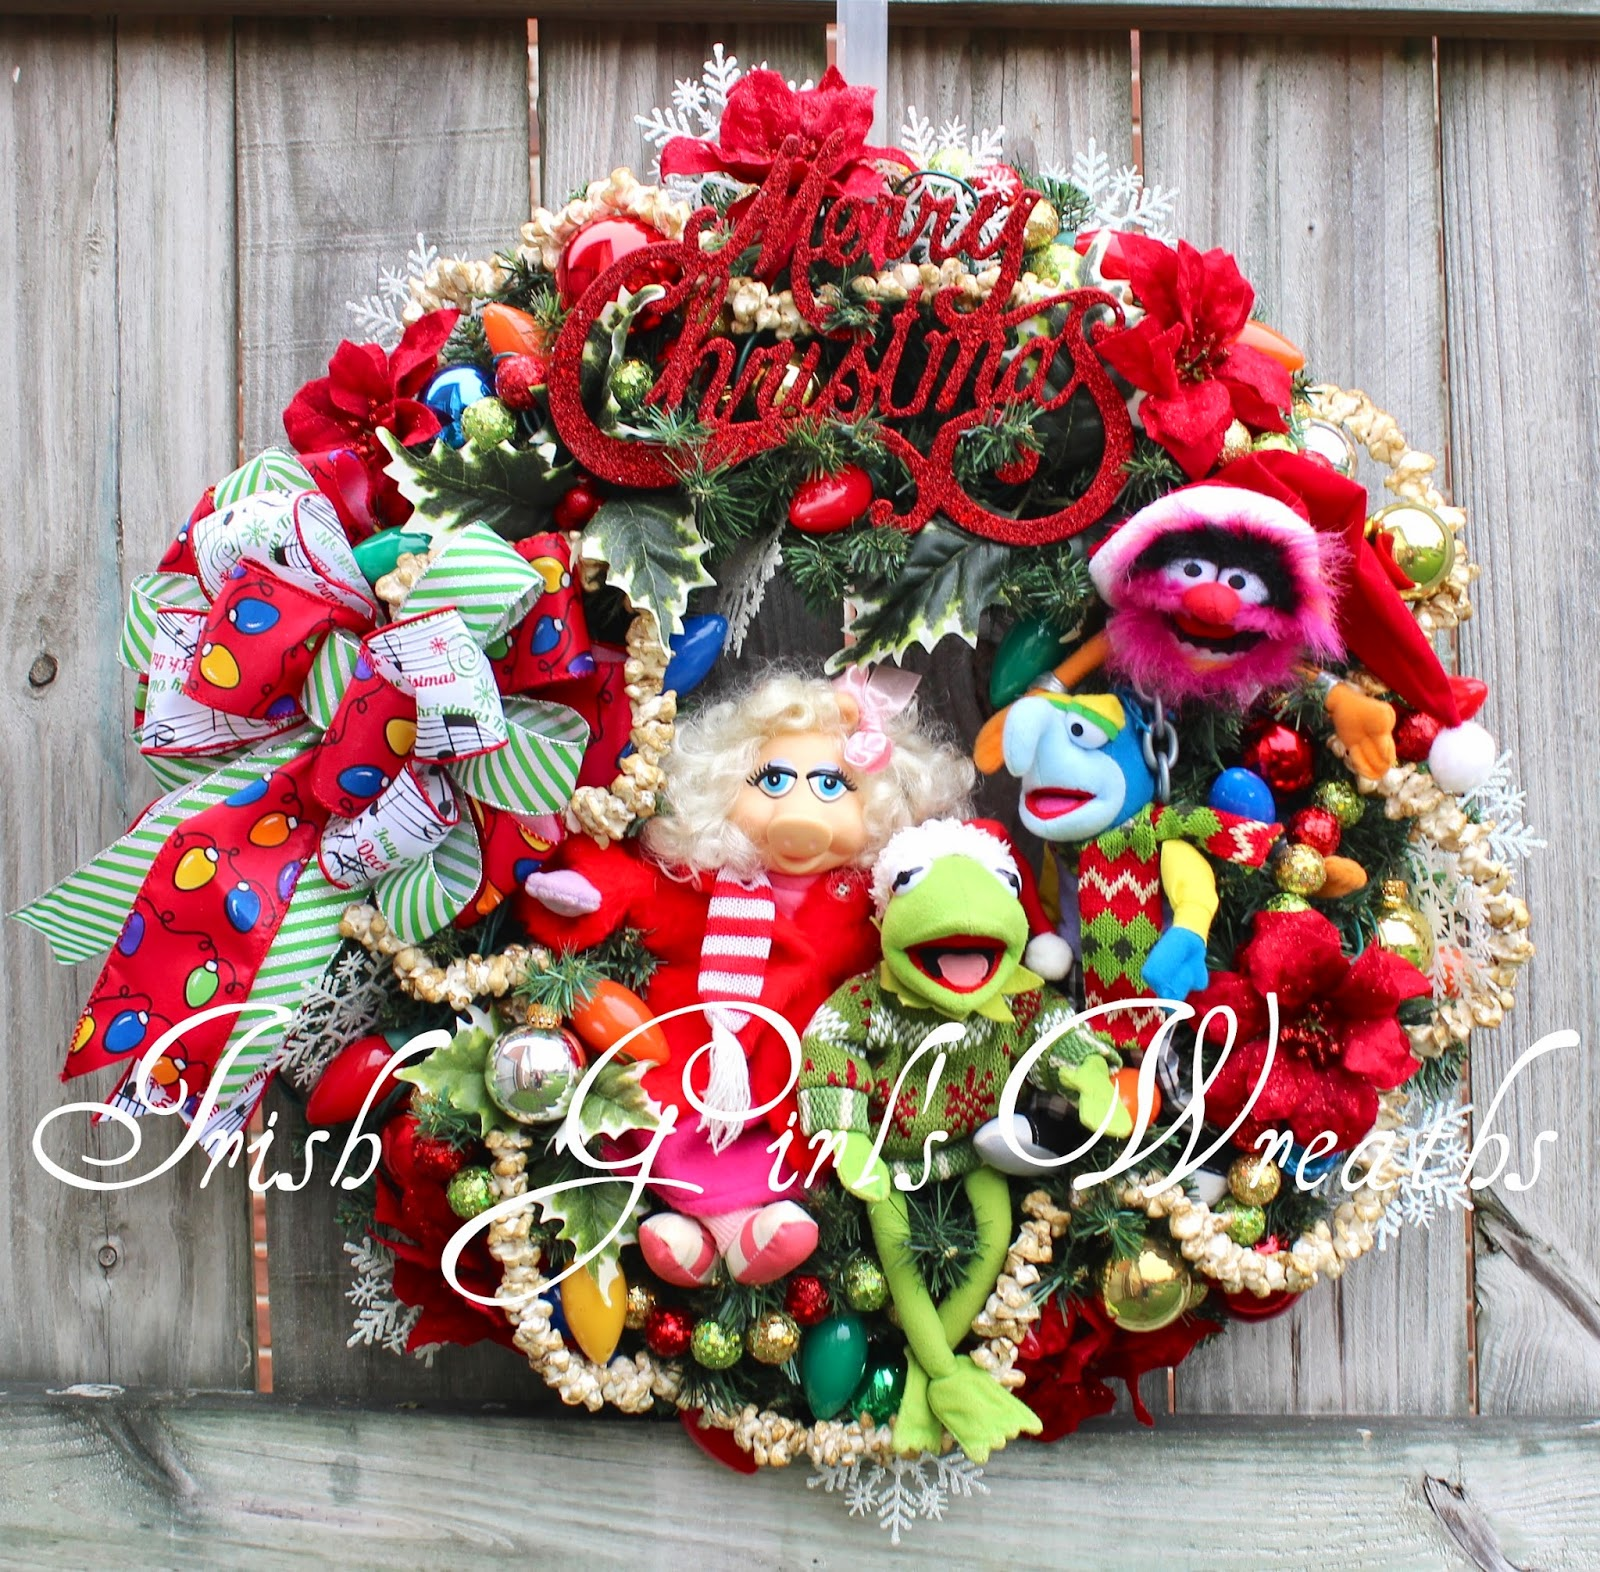 Muppets Merry Merry Christmas Wreath